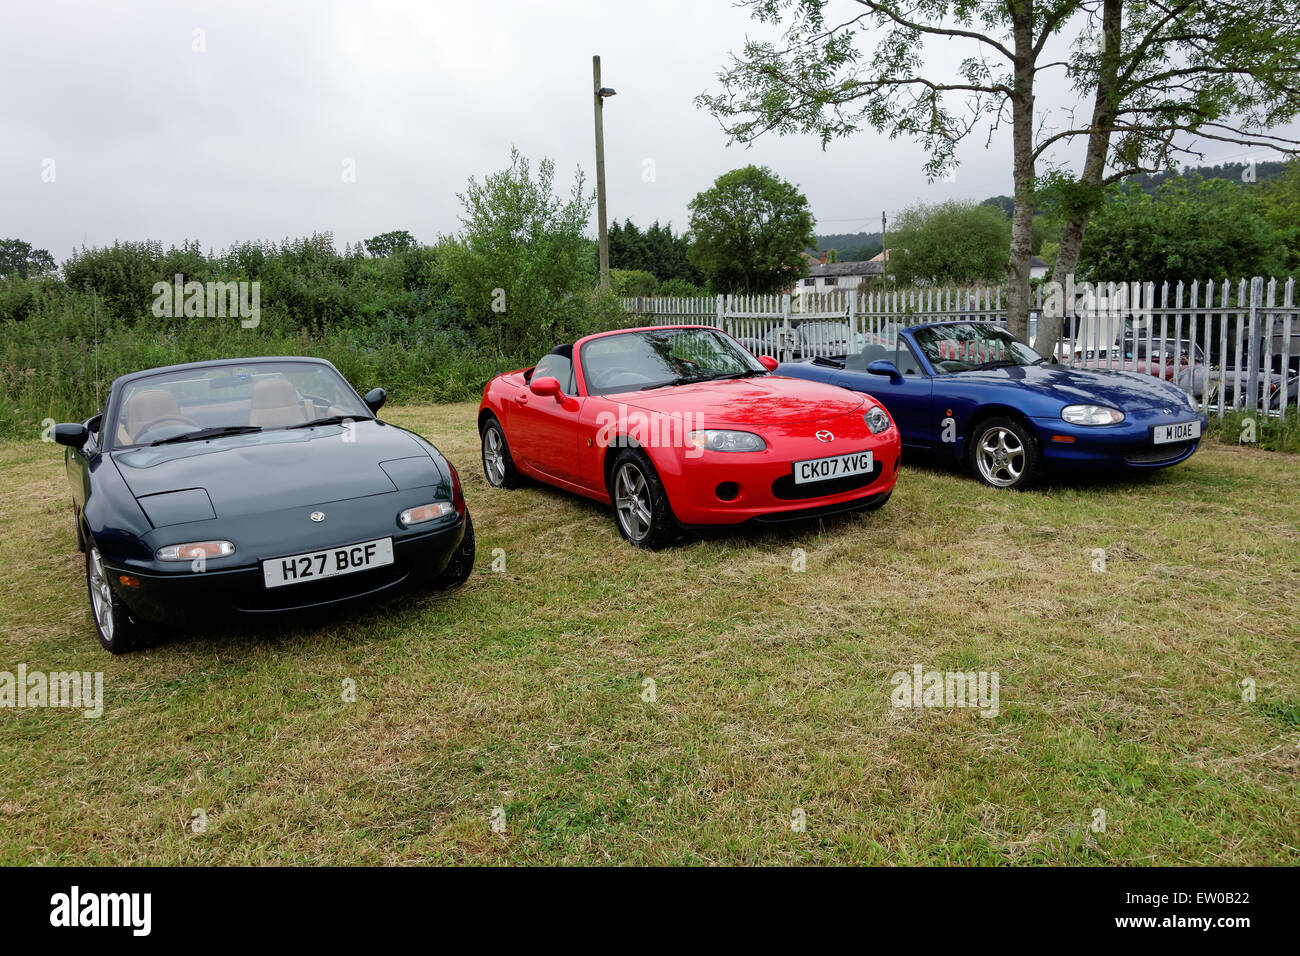 Mazda Eunos High Resolution Stock Photography And Images Alamy